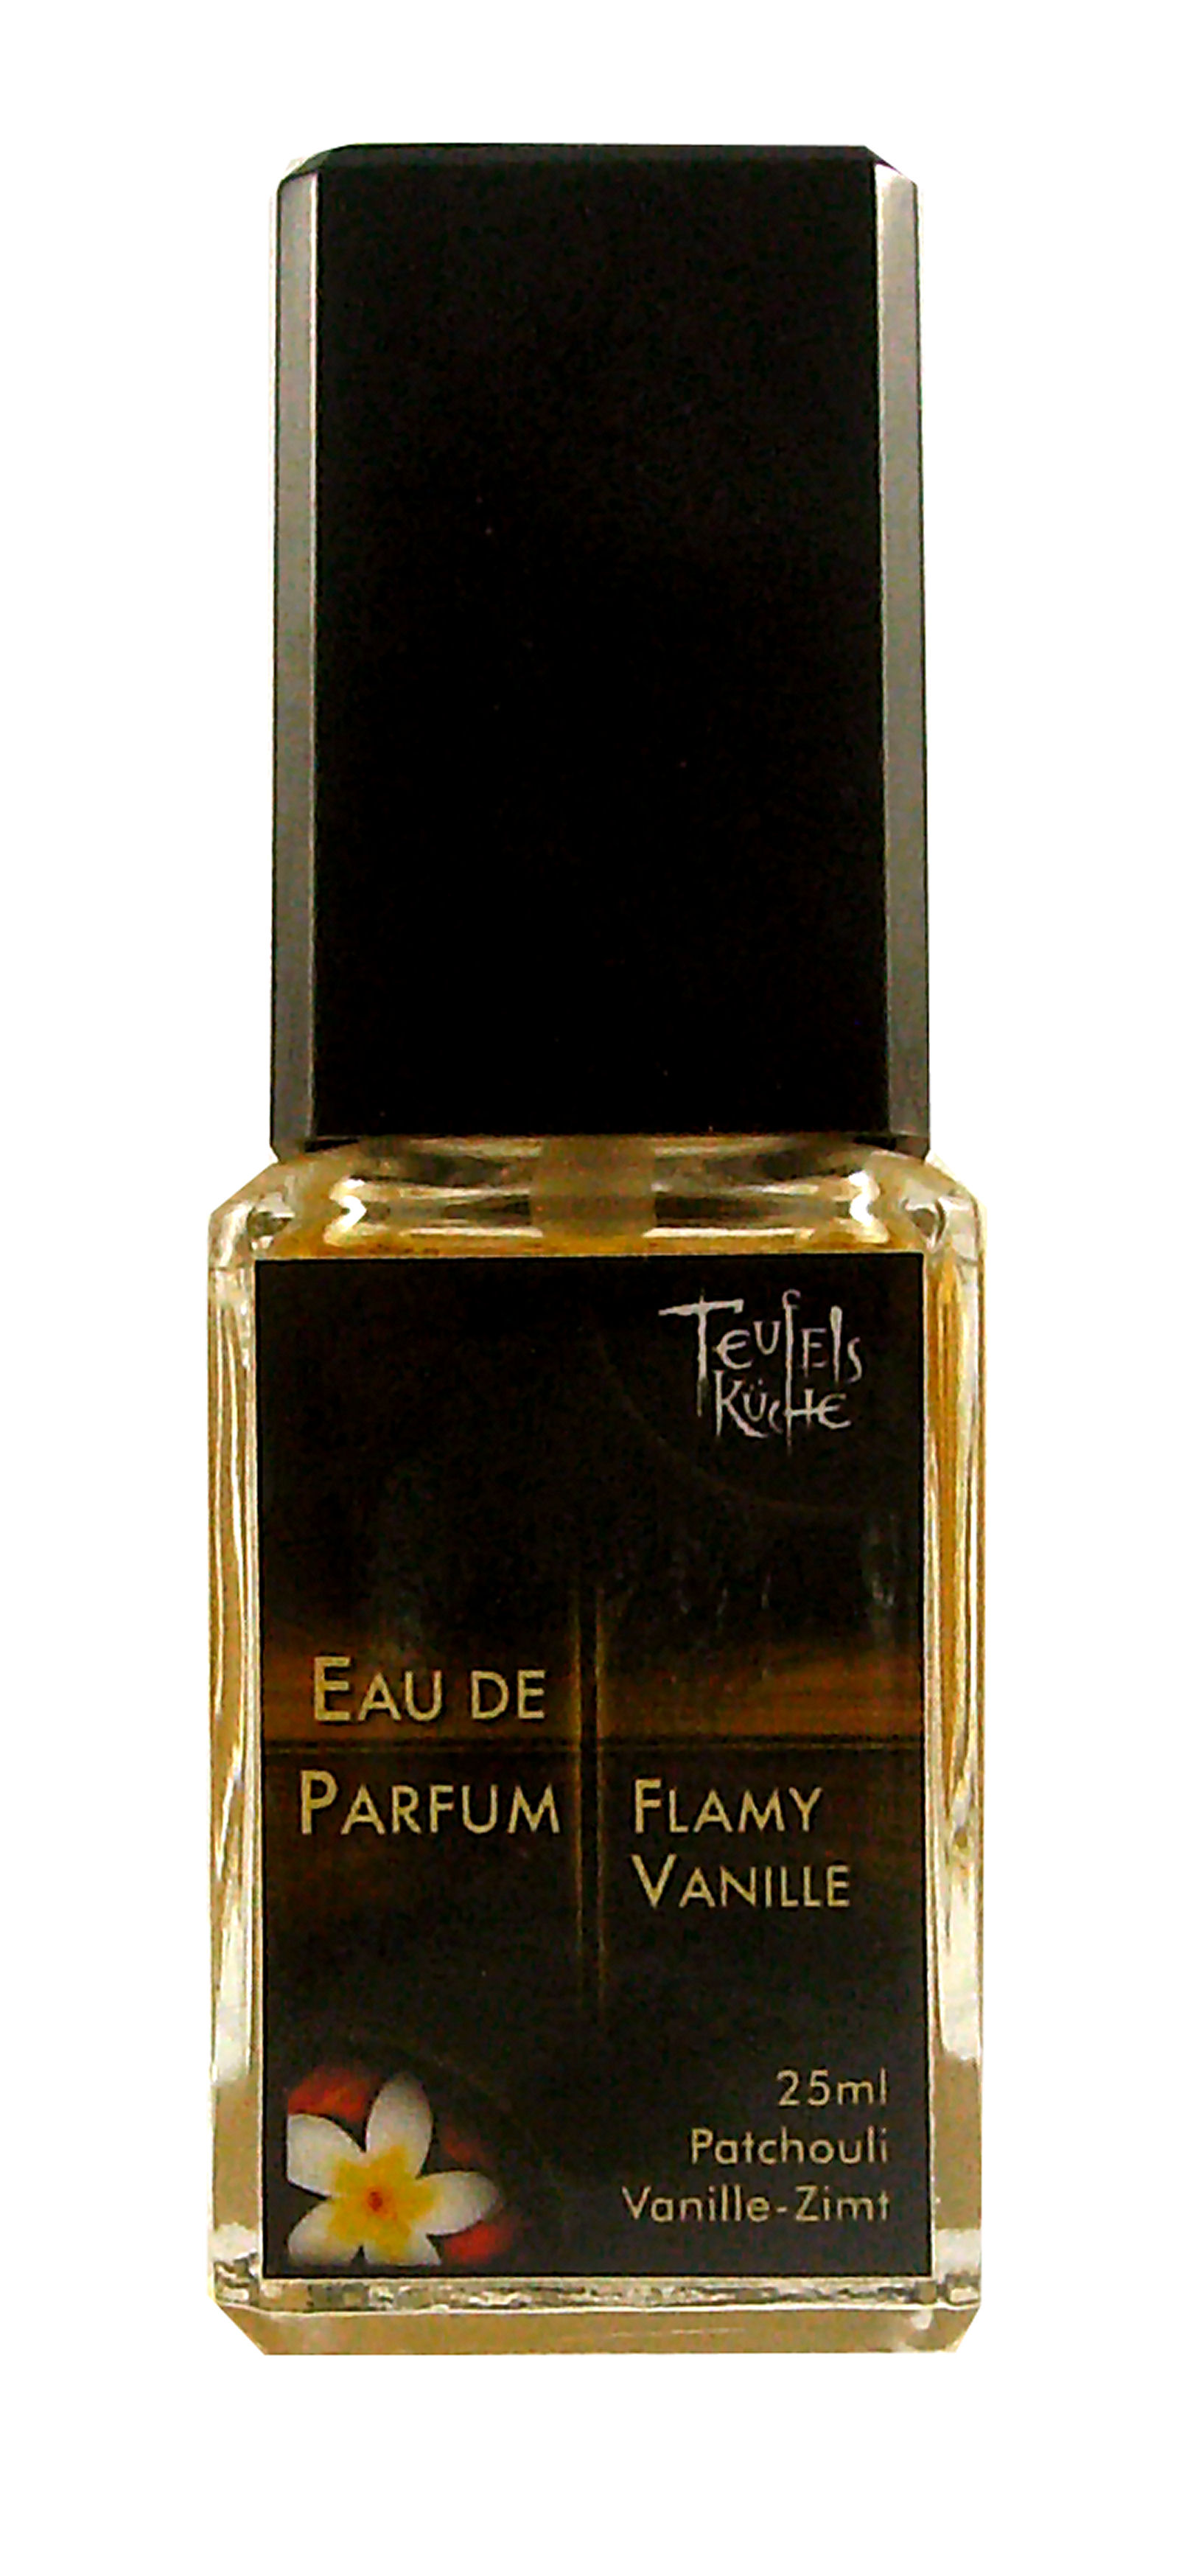 Flamy Vanille, Eau de Parfum 25ml